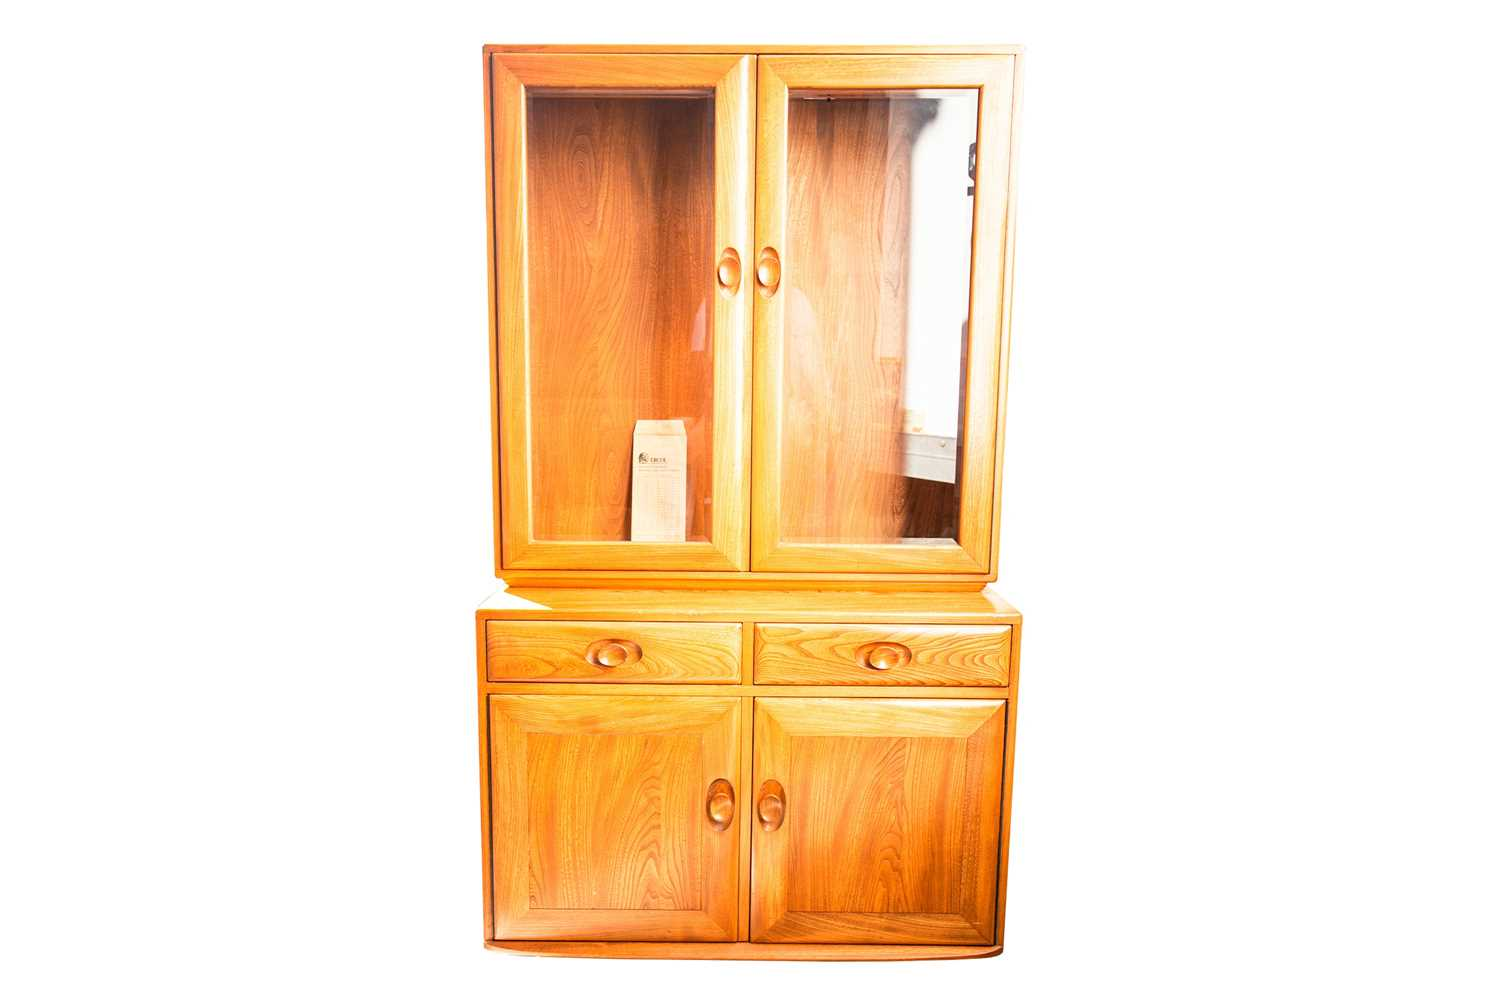 An Ercol golden dawn light elm two-section display cupboard. With two glazed doors above a base with